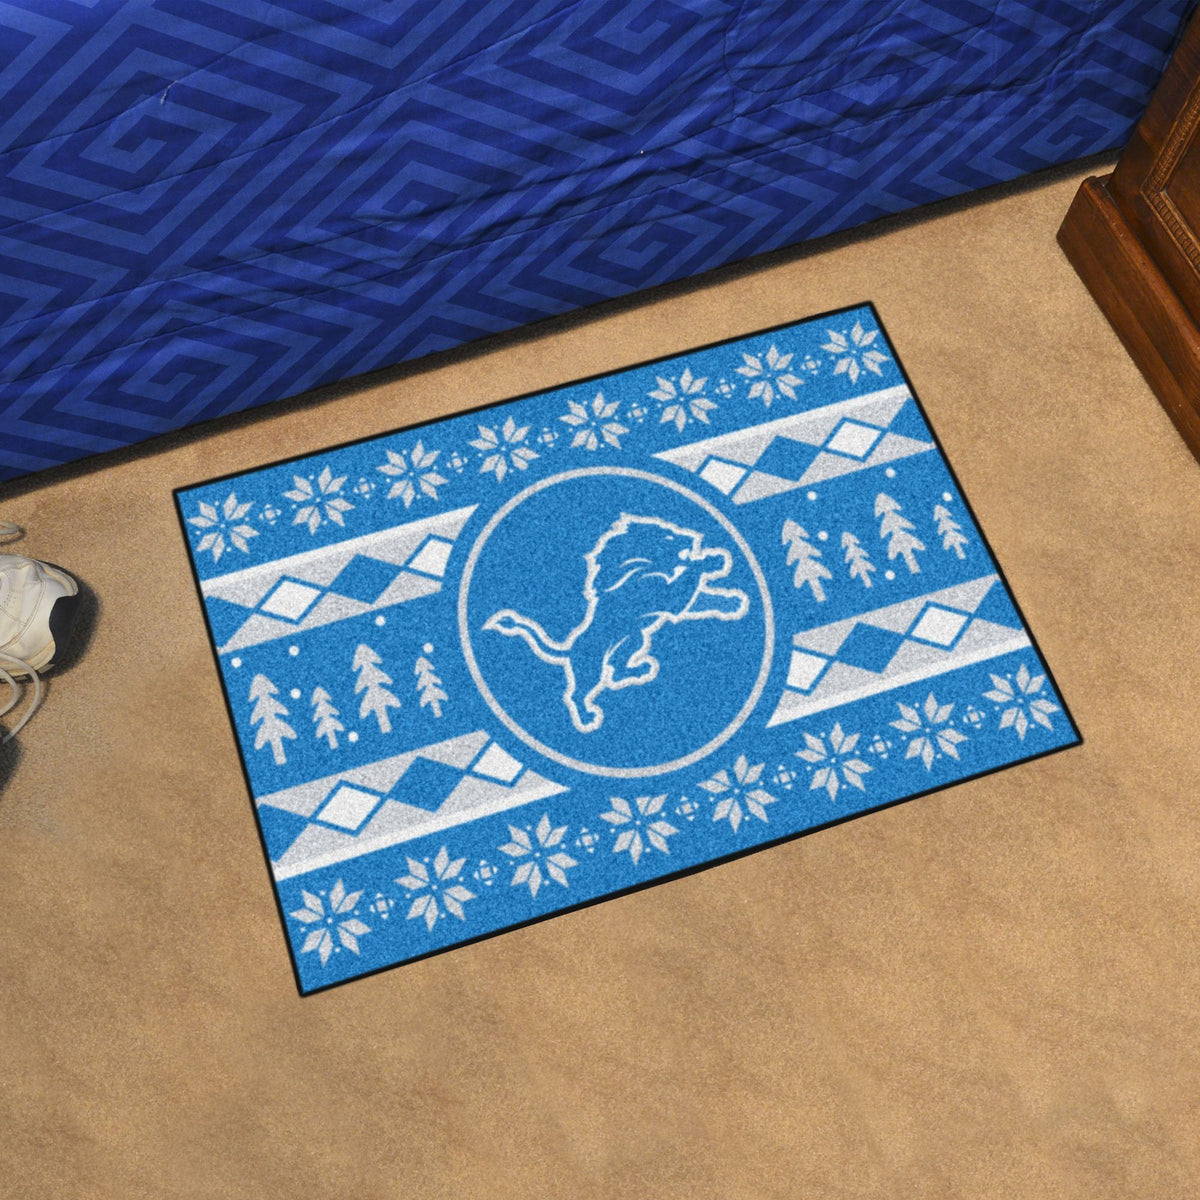 "NFL - Holiday Sweater Starter Mat, 19"" x 30"" NFL Mats, Rectangular Mats, Holiday Sweater Starter Mat, NFL, Home Fan Mats Detroit Lions"